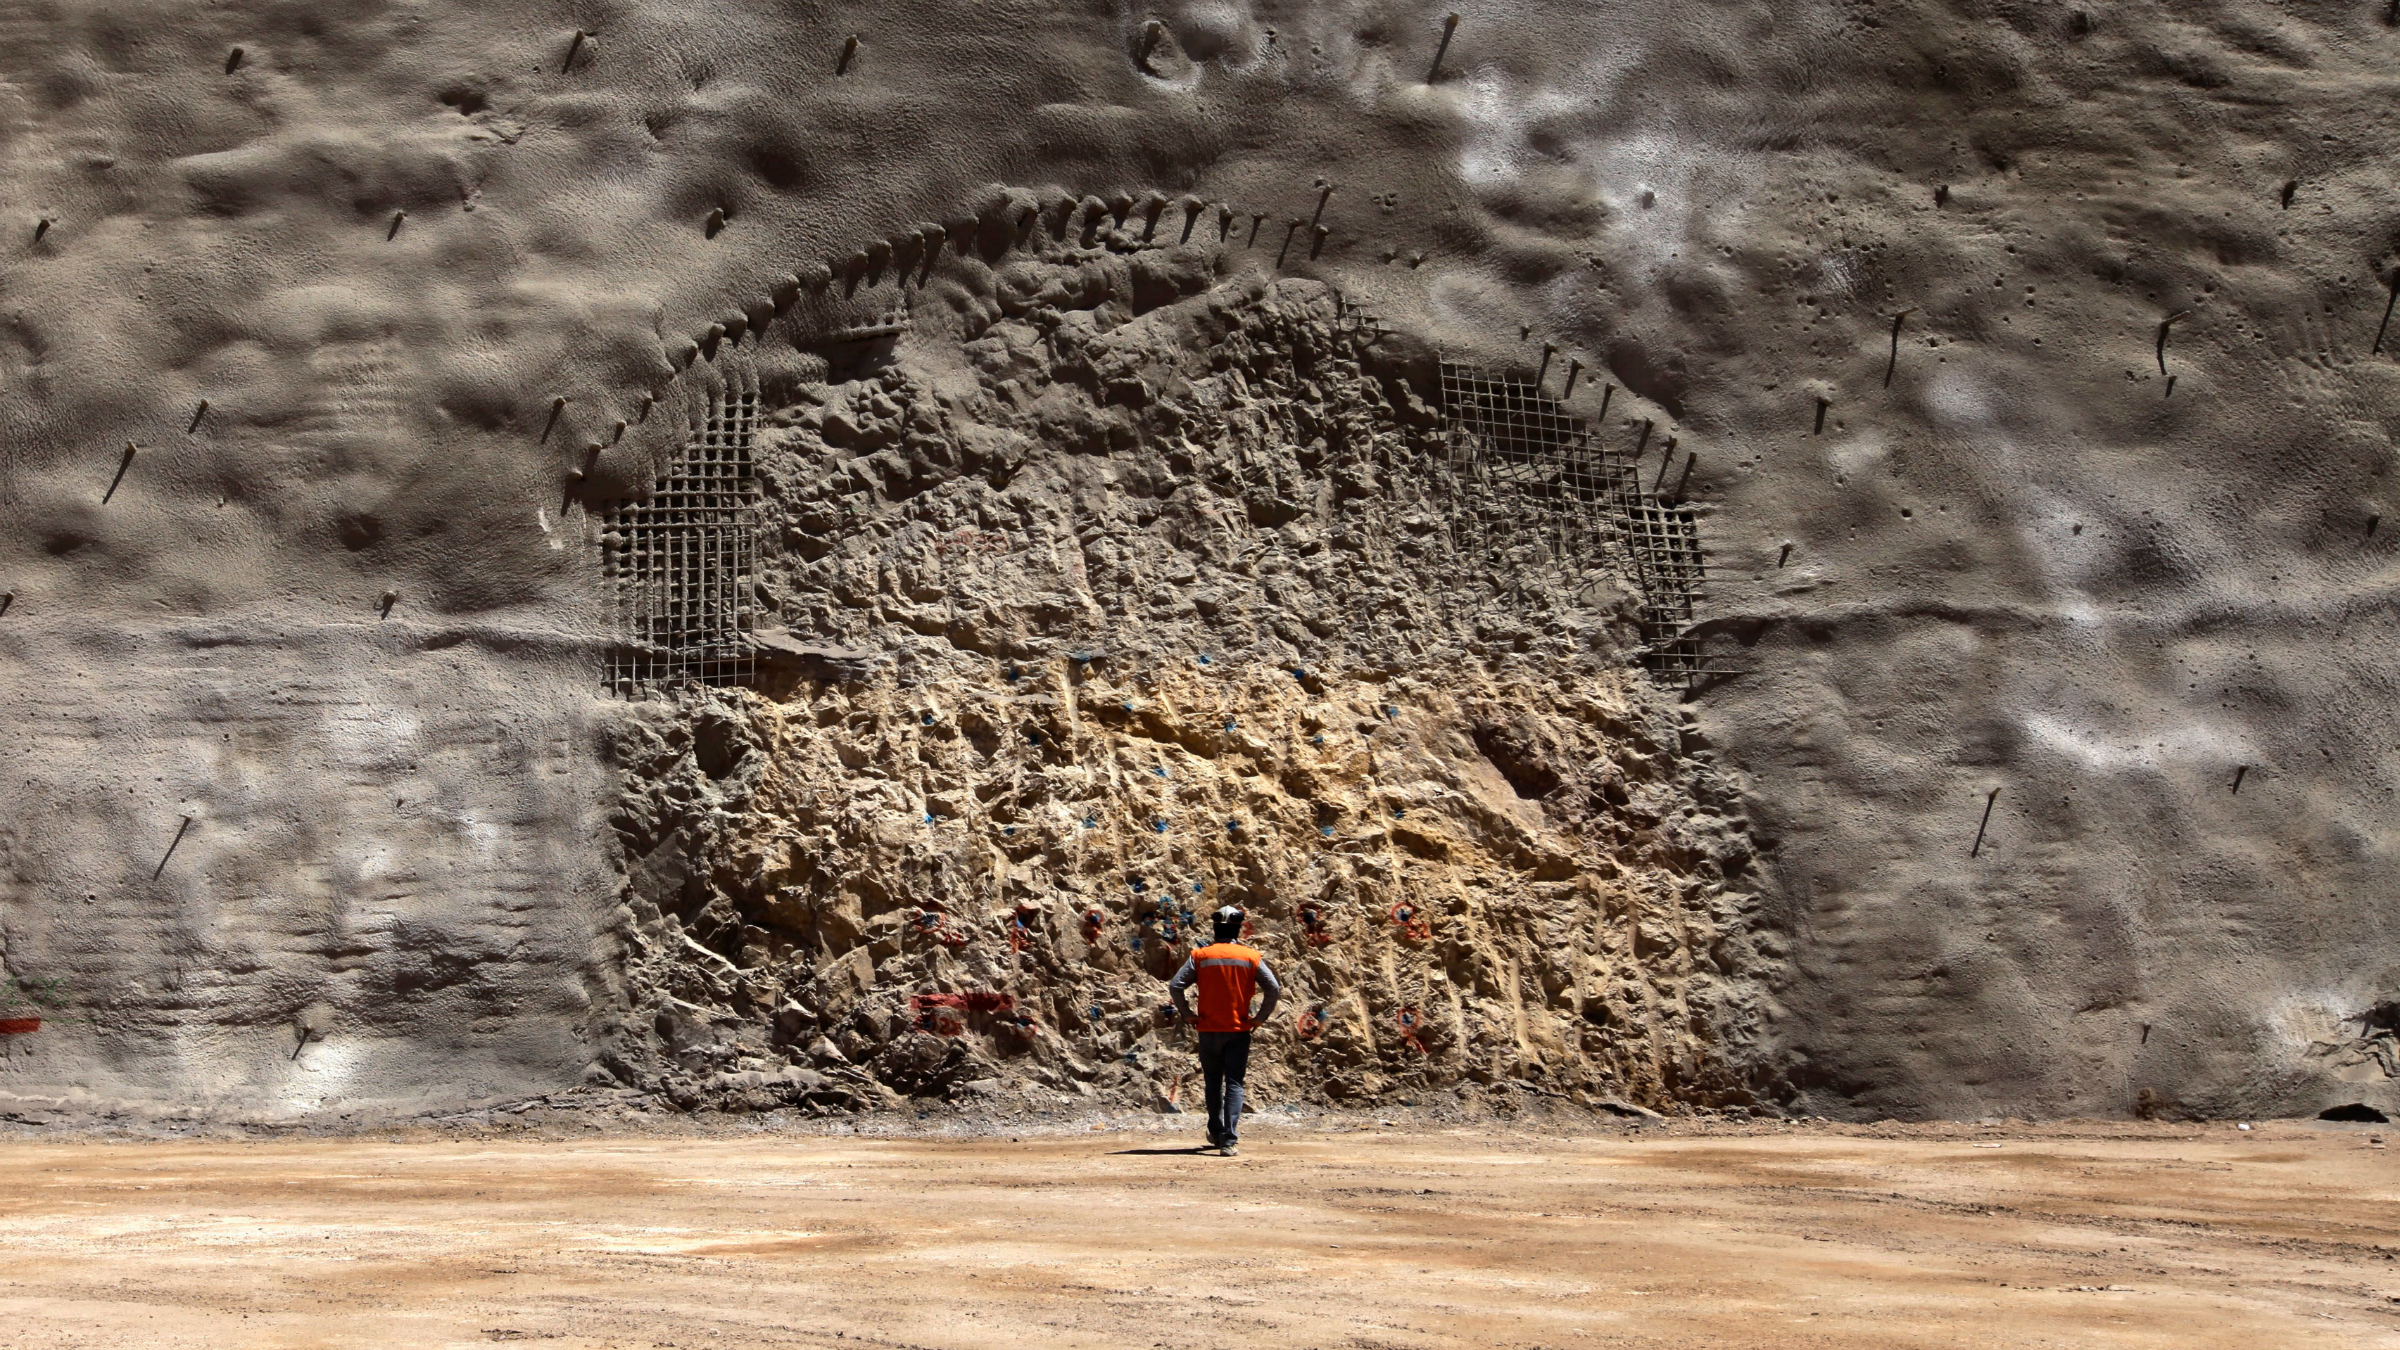 A worker from the National Copper Mine Corporation, or Codelco, looks at the area where a new tunnel is marked to be drilled at the Chuquicamata copper mine in the Atacama desert in northern Chile.